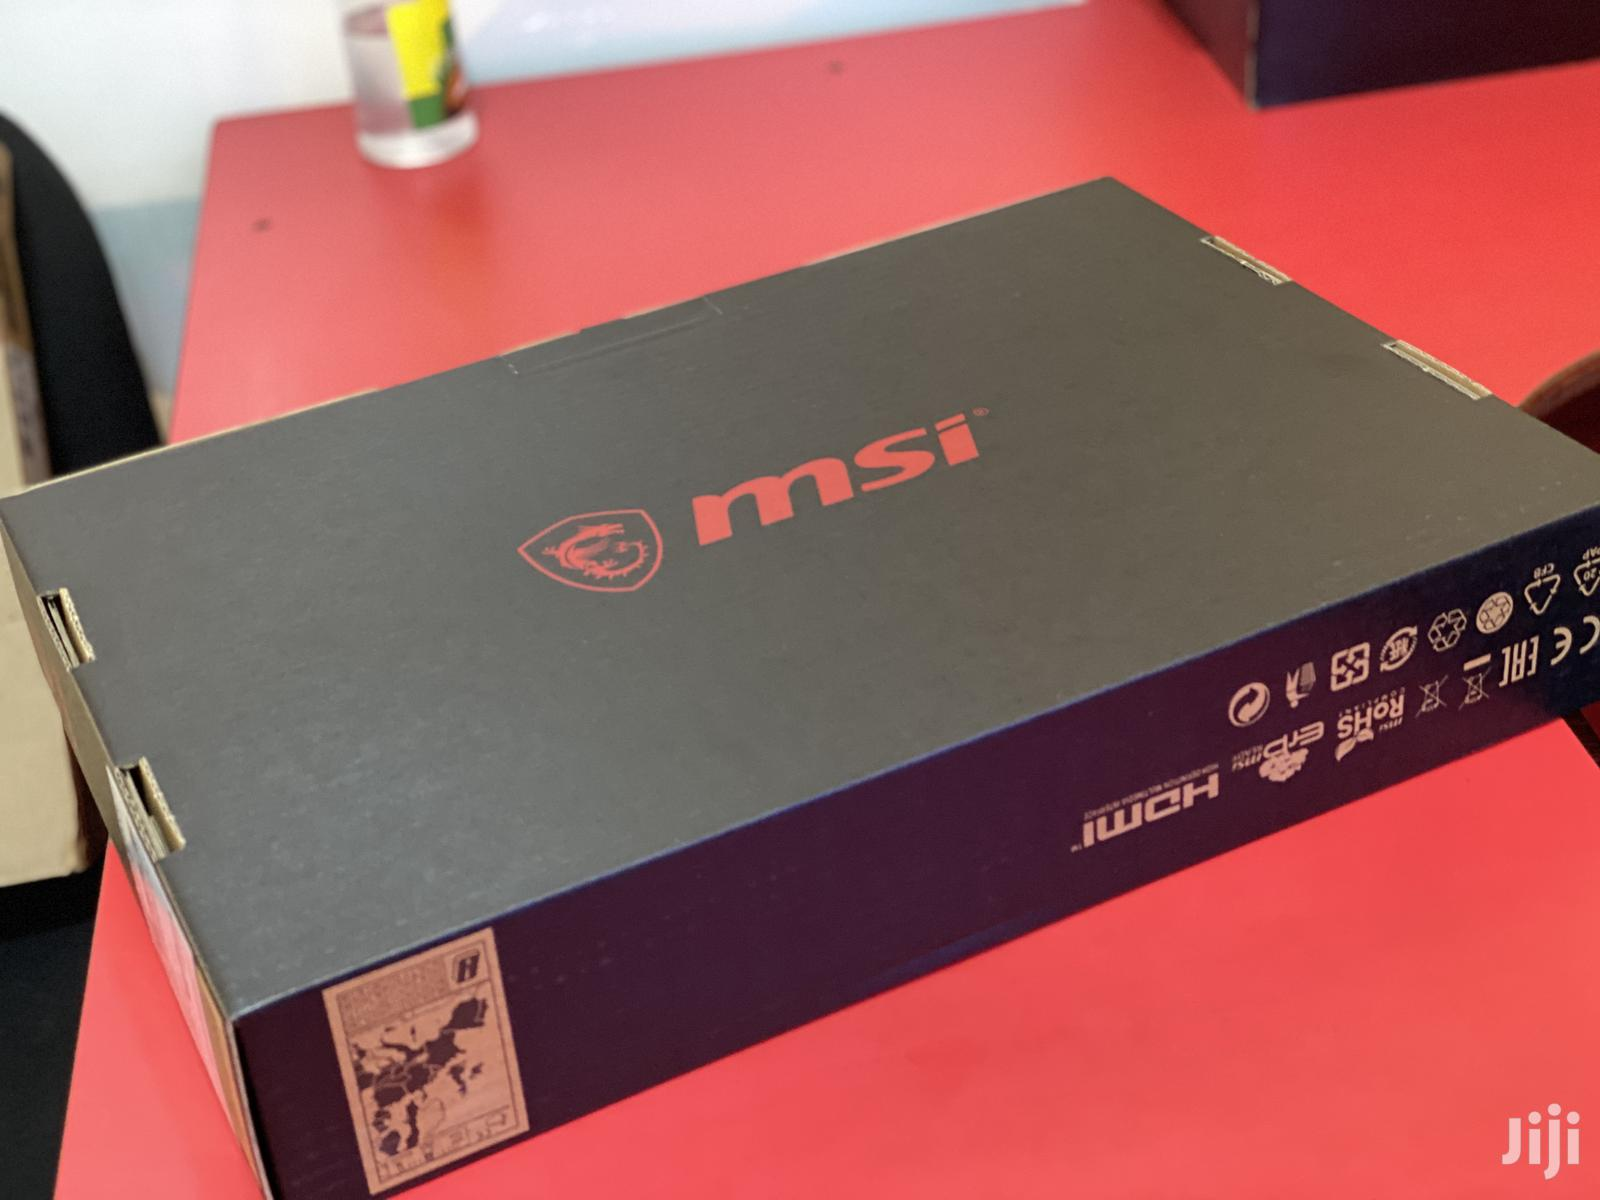 New Laptop MSI GF63 16GB Intel Core i7 SSHD (Hybrid) 512GB | Laptops & Computers for sale in Kampala, Central Region, Uganda